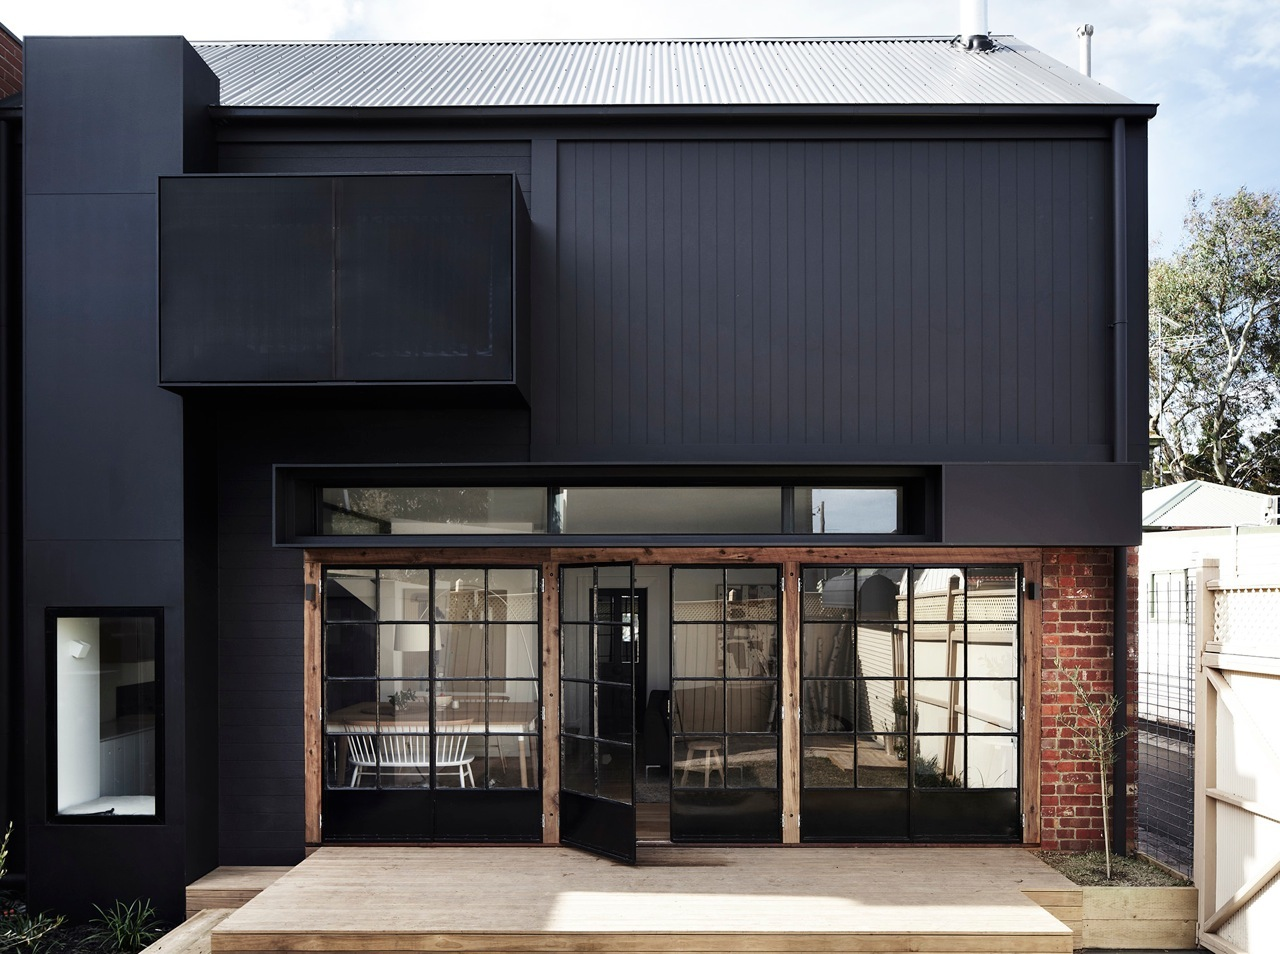 Kerferd House by Whiting architects